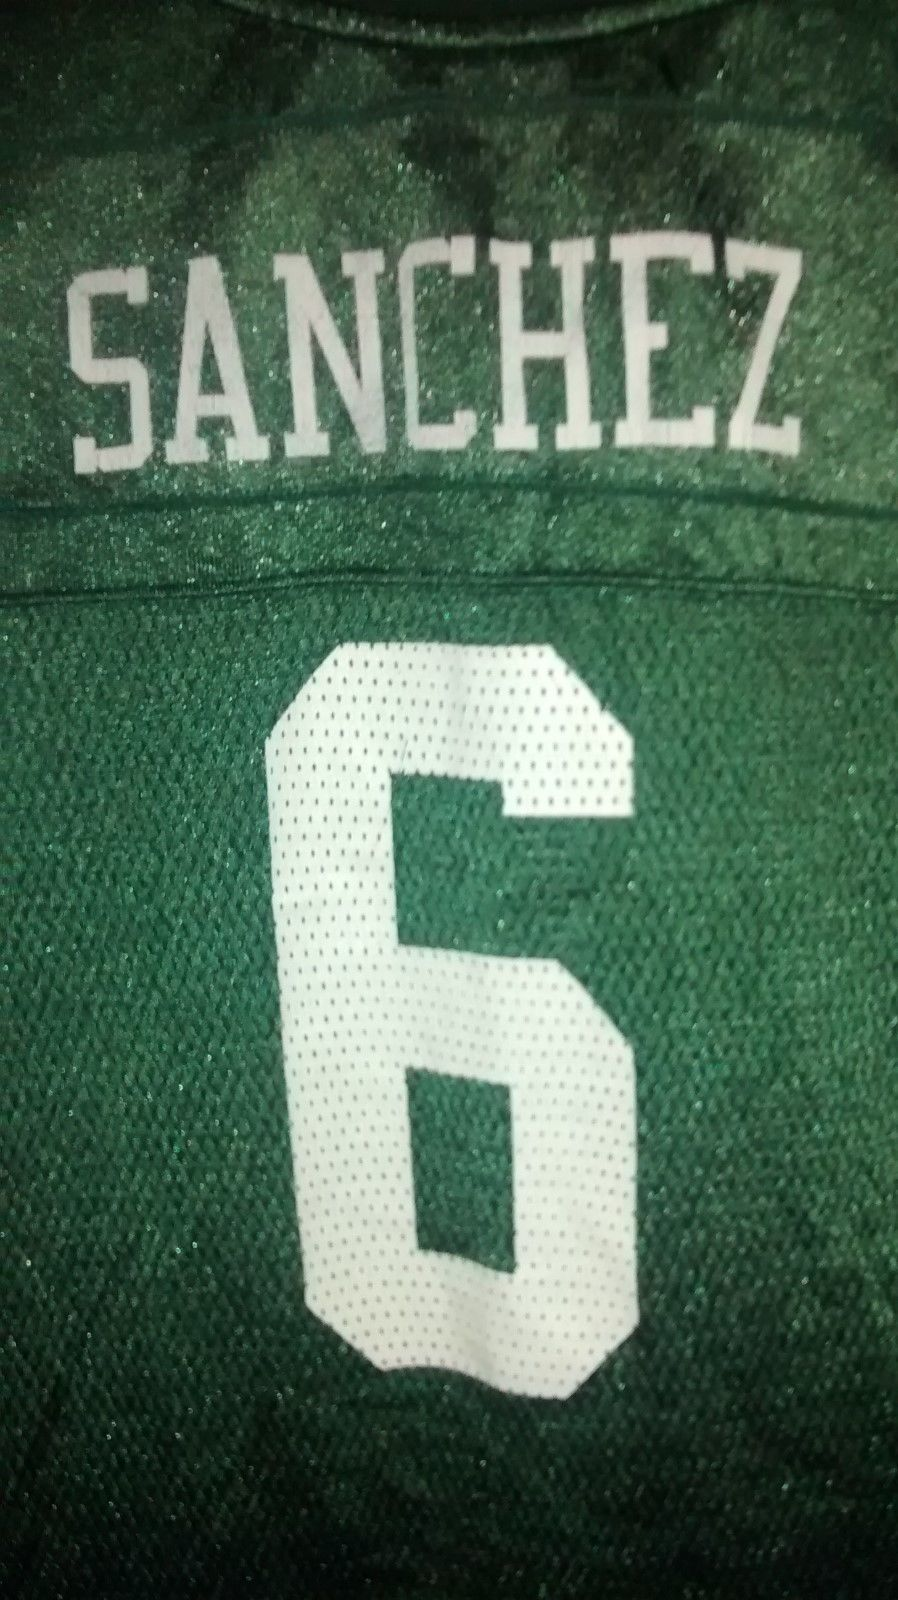 a62884a5 NY Jets NFL Youth Jersey Shirt Large 14/16 L and 36 similar items